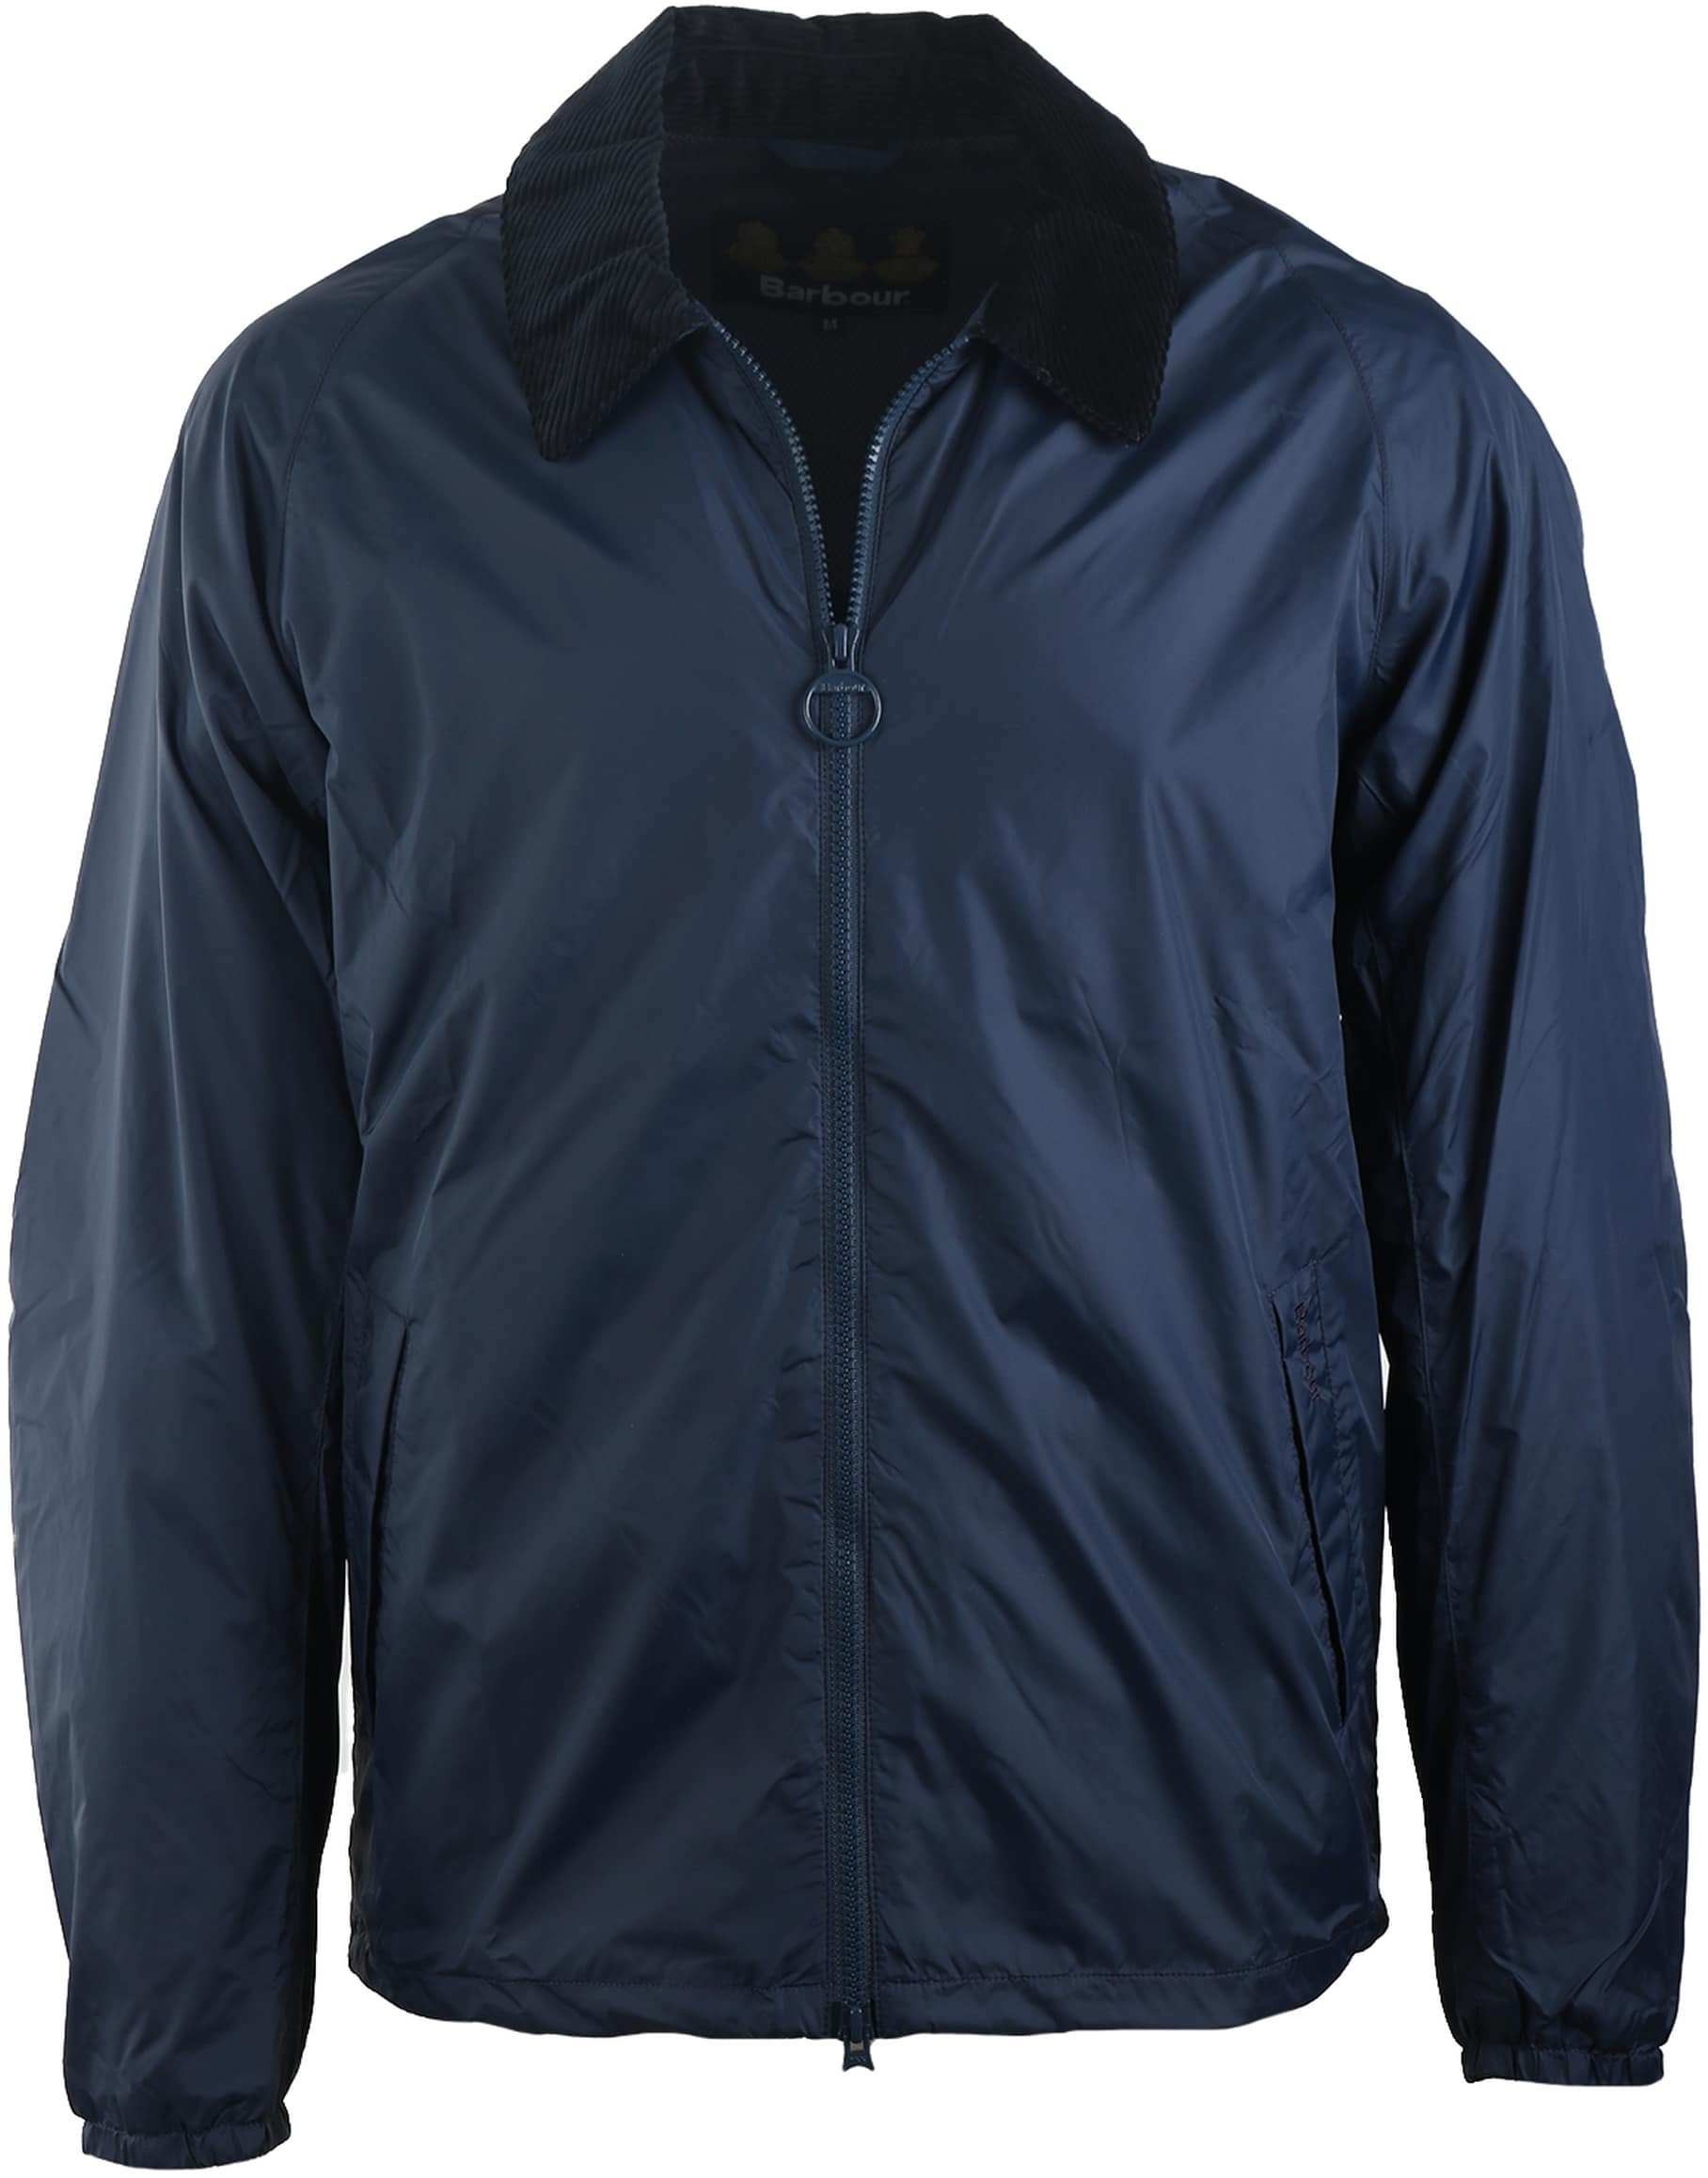 Barbour Lundy Zomerjas Donkerblauw foto 0